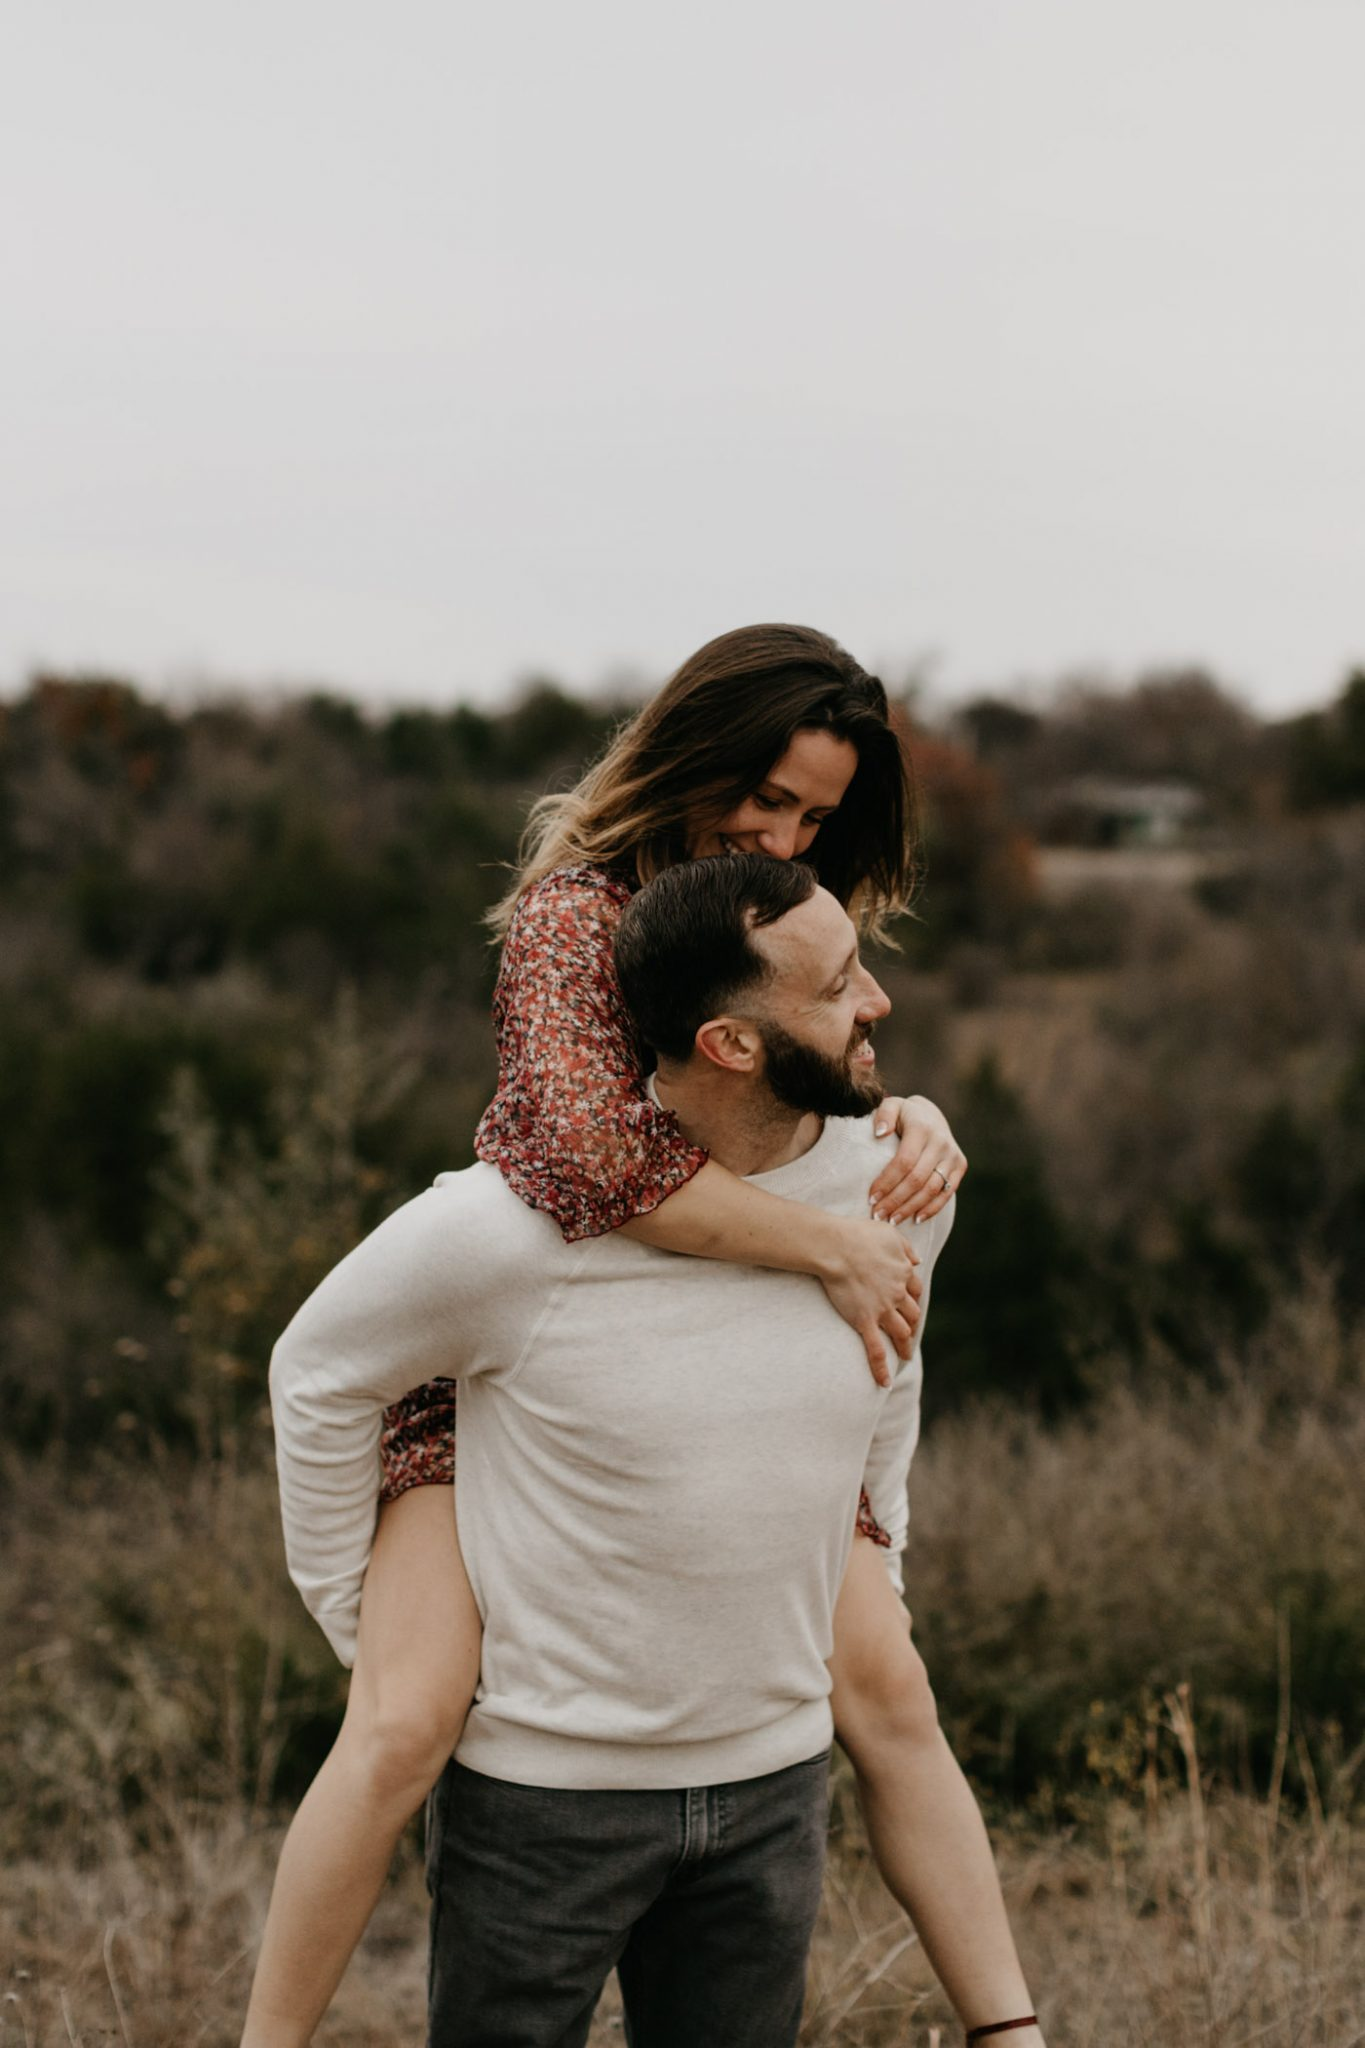 Girl on boys back for playful engagement photos